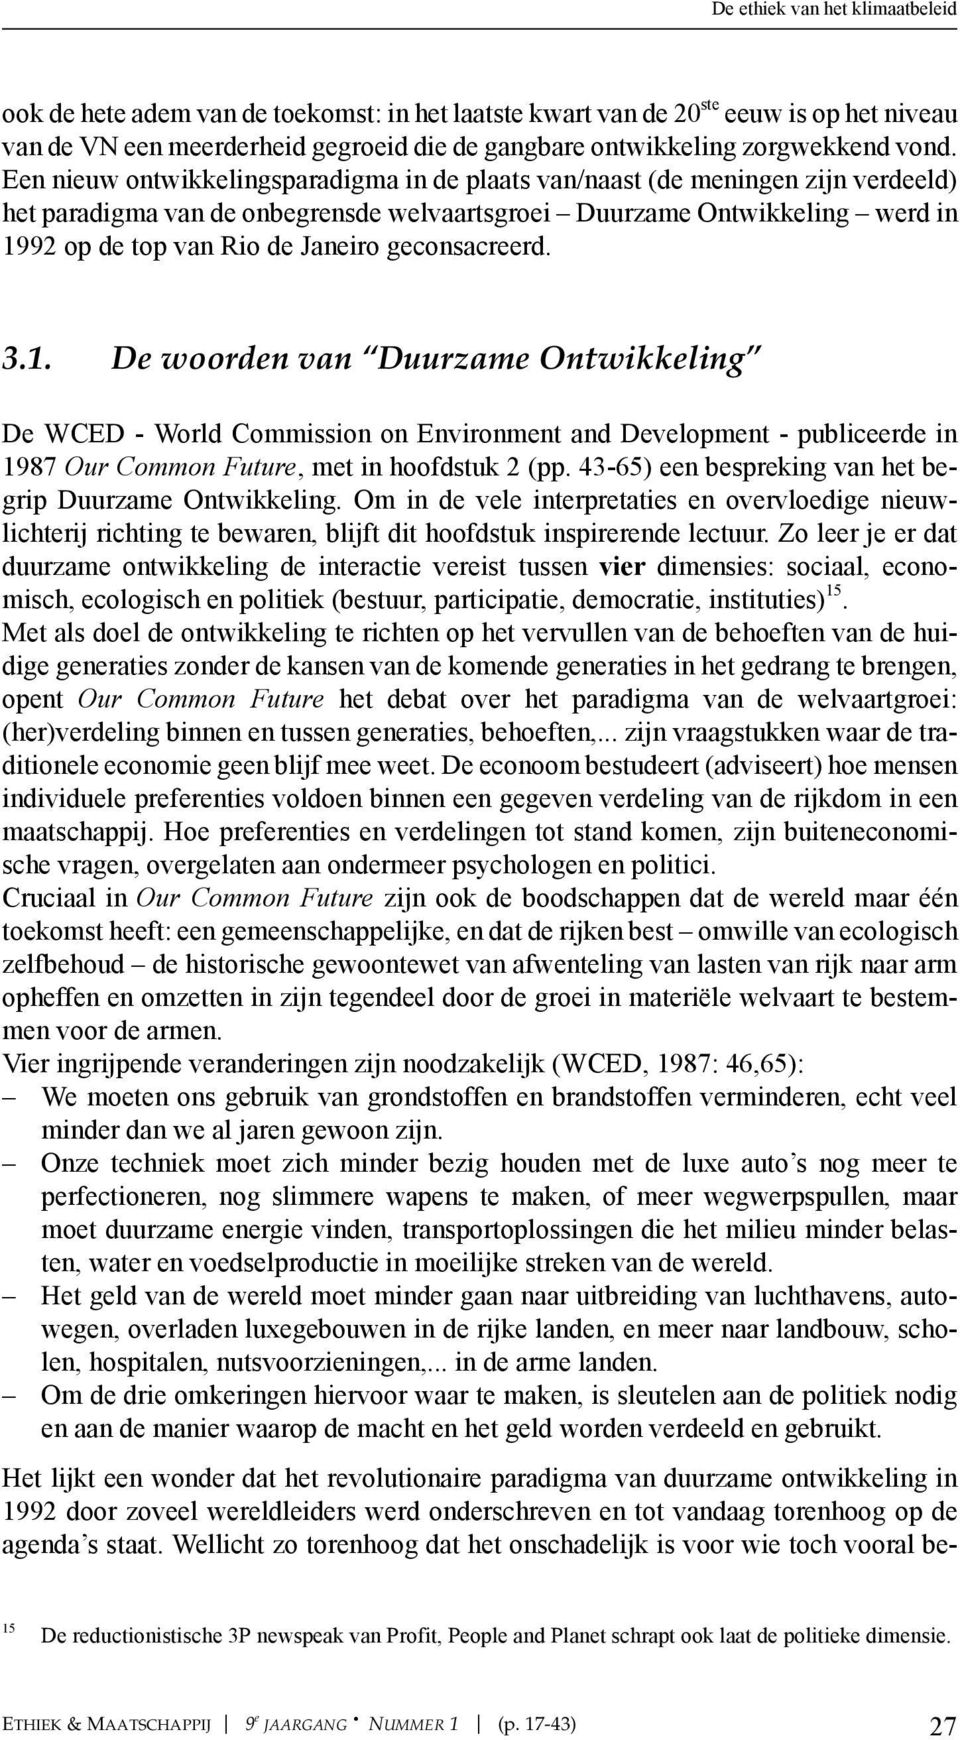 Janeiro geconsacreerd. 3.1. De woorden van Duurzame Ontwikkeling De WCED - World Commission on Environment and Development - publiceerde in 1987 Our Common Future, met in hoofdstuk 2 (pp.